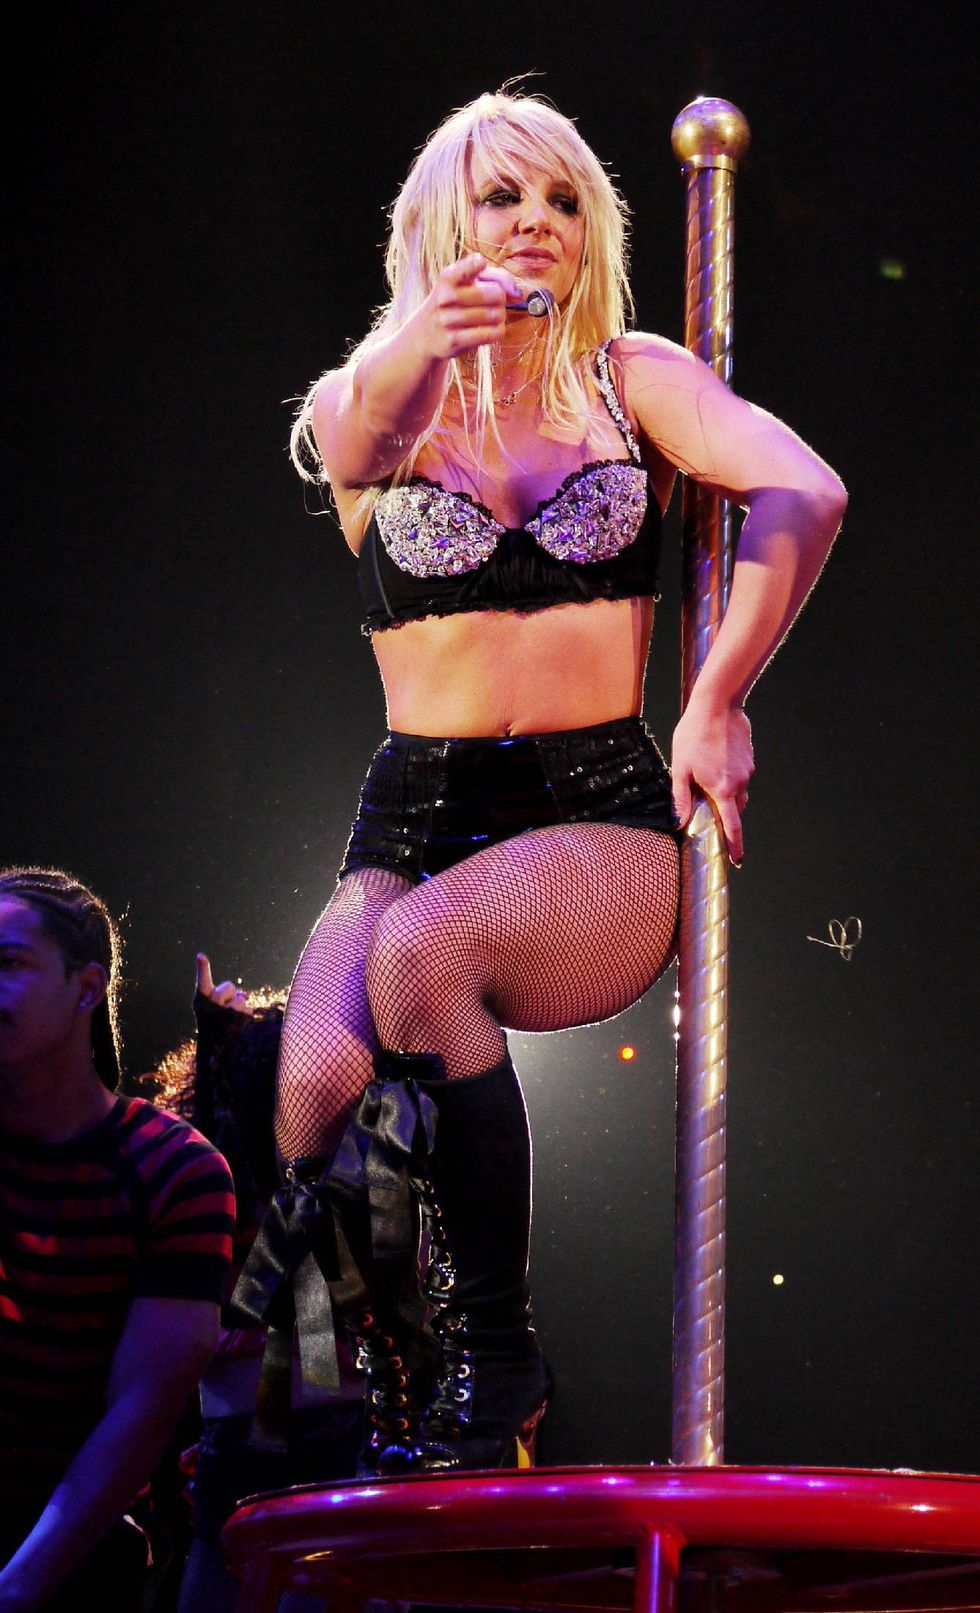 britney-spears-performs-at-o2-arena-in-london-12